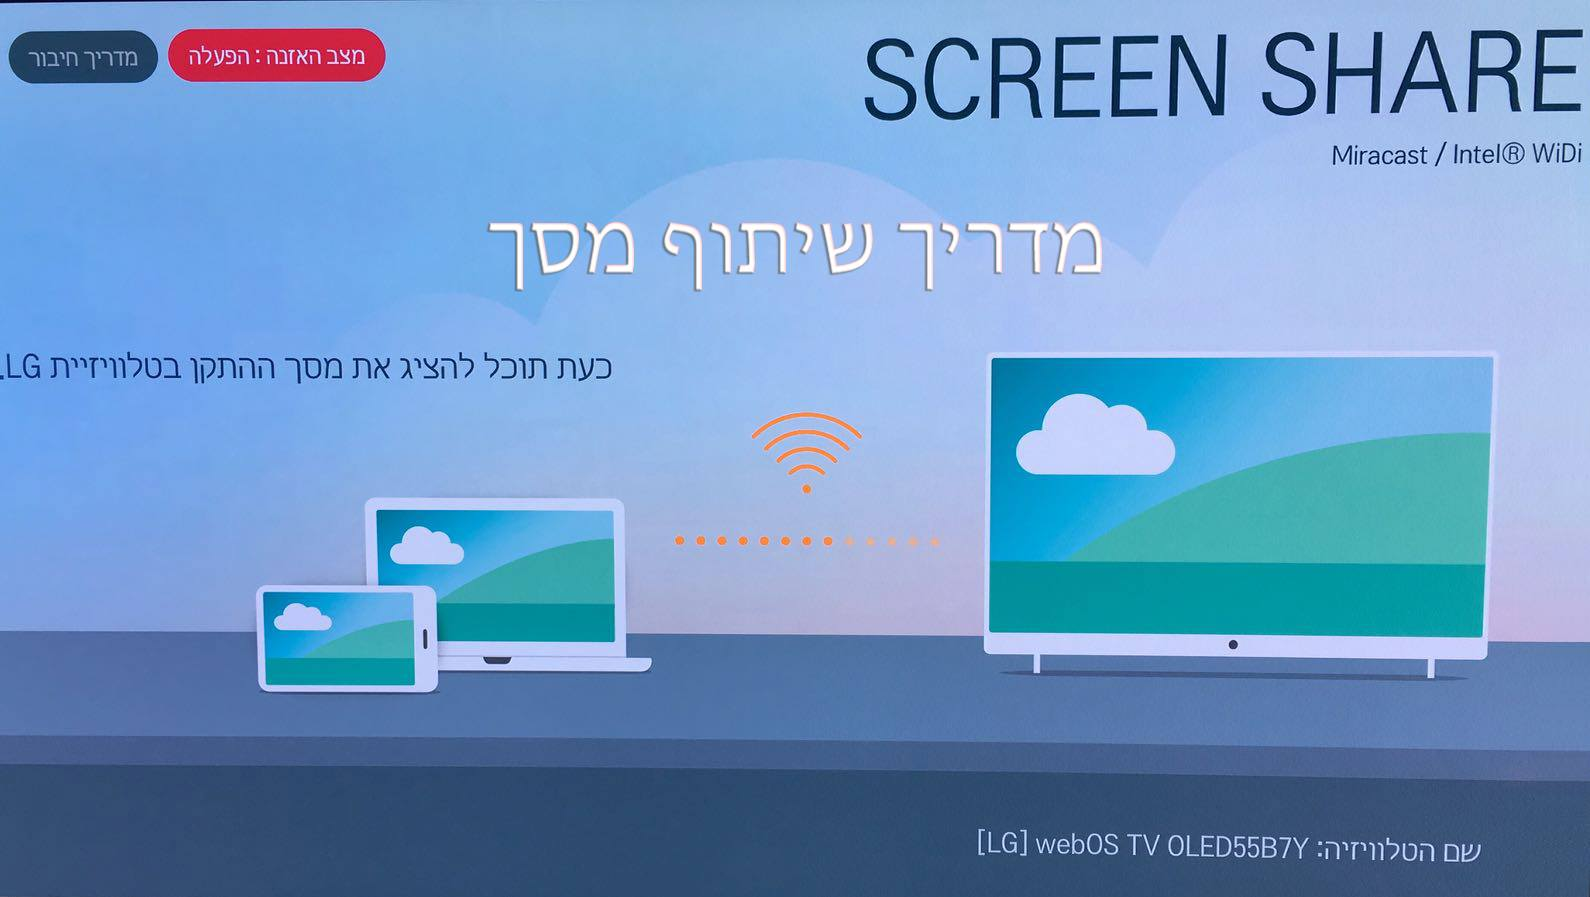 מדריך לשיתוף מסך Screen Share – LG WebOS Smart TV Israel